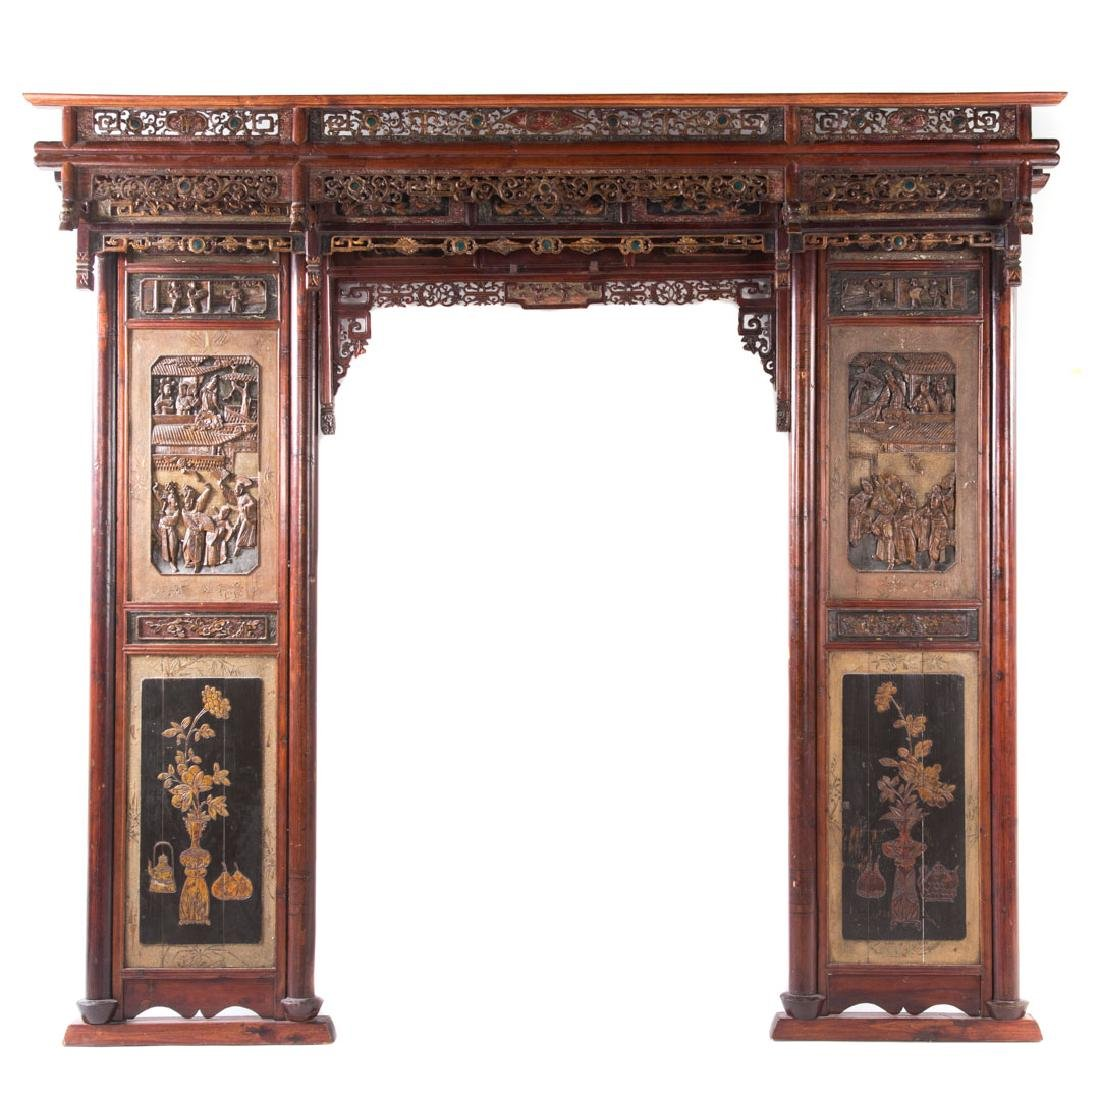 Chinese carved, painted, and gilt bedstead